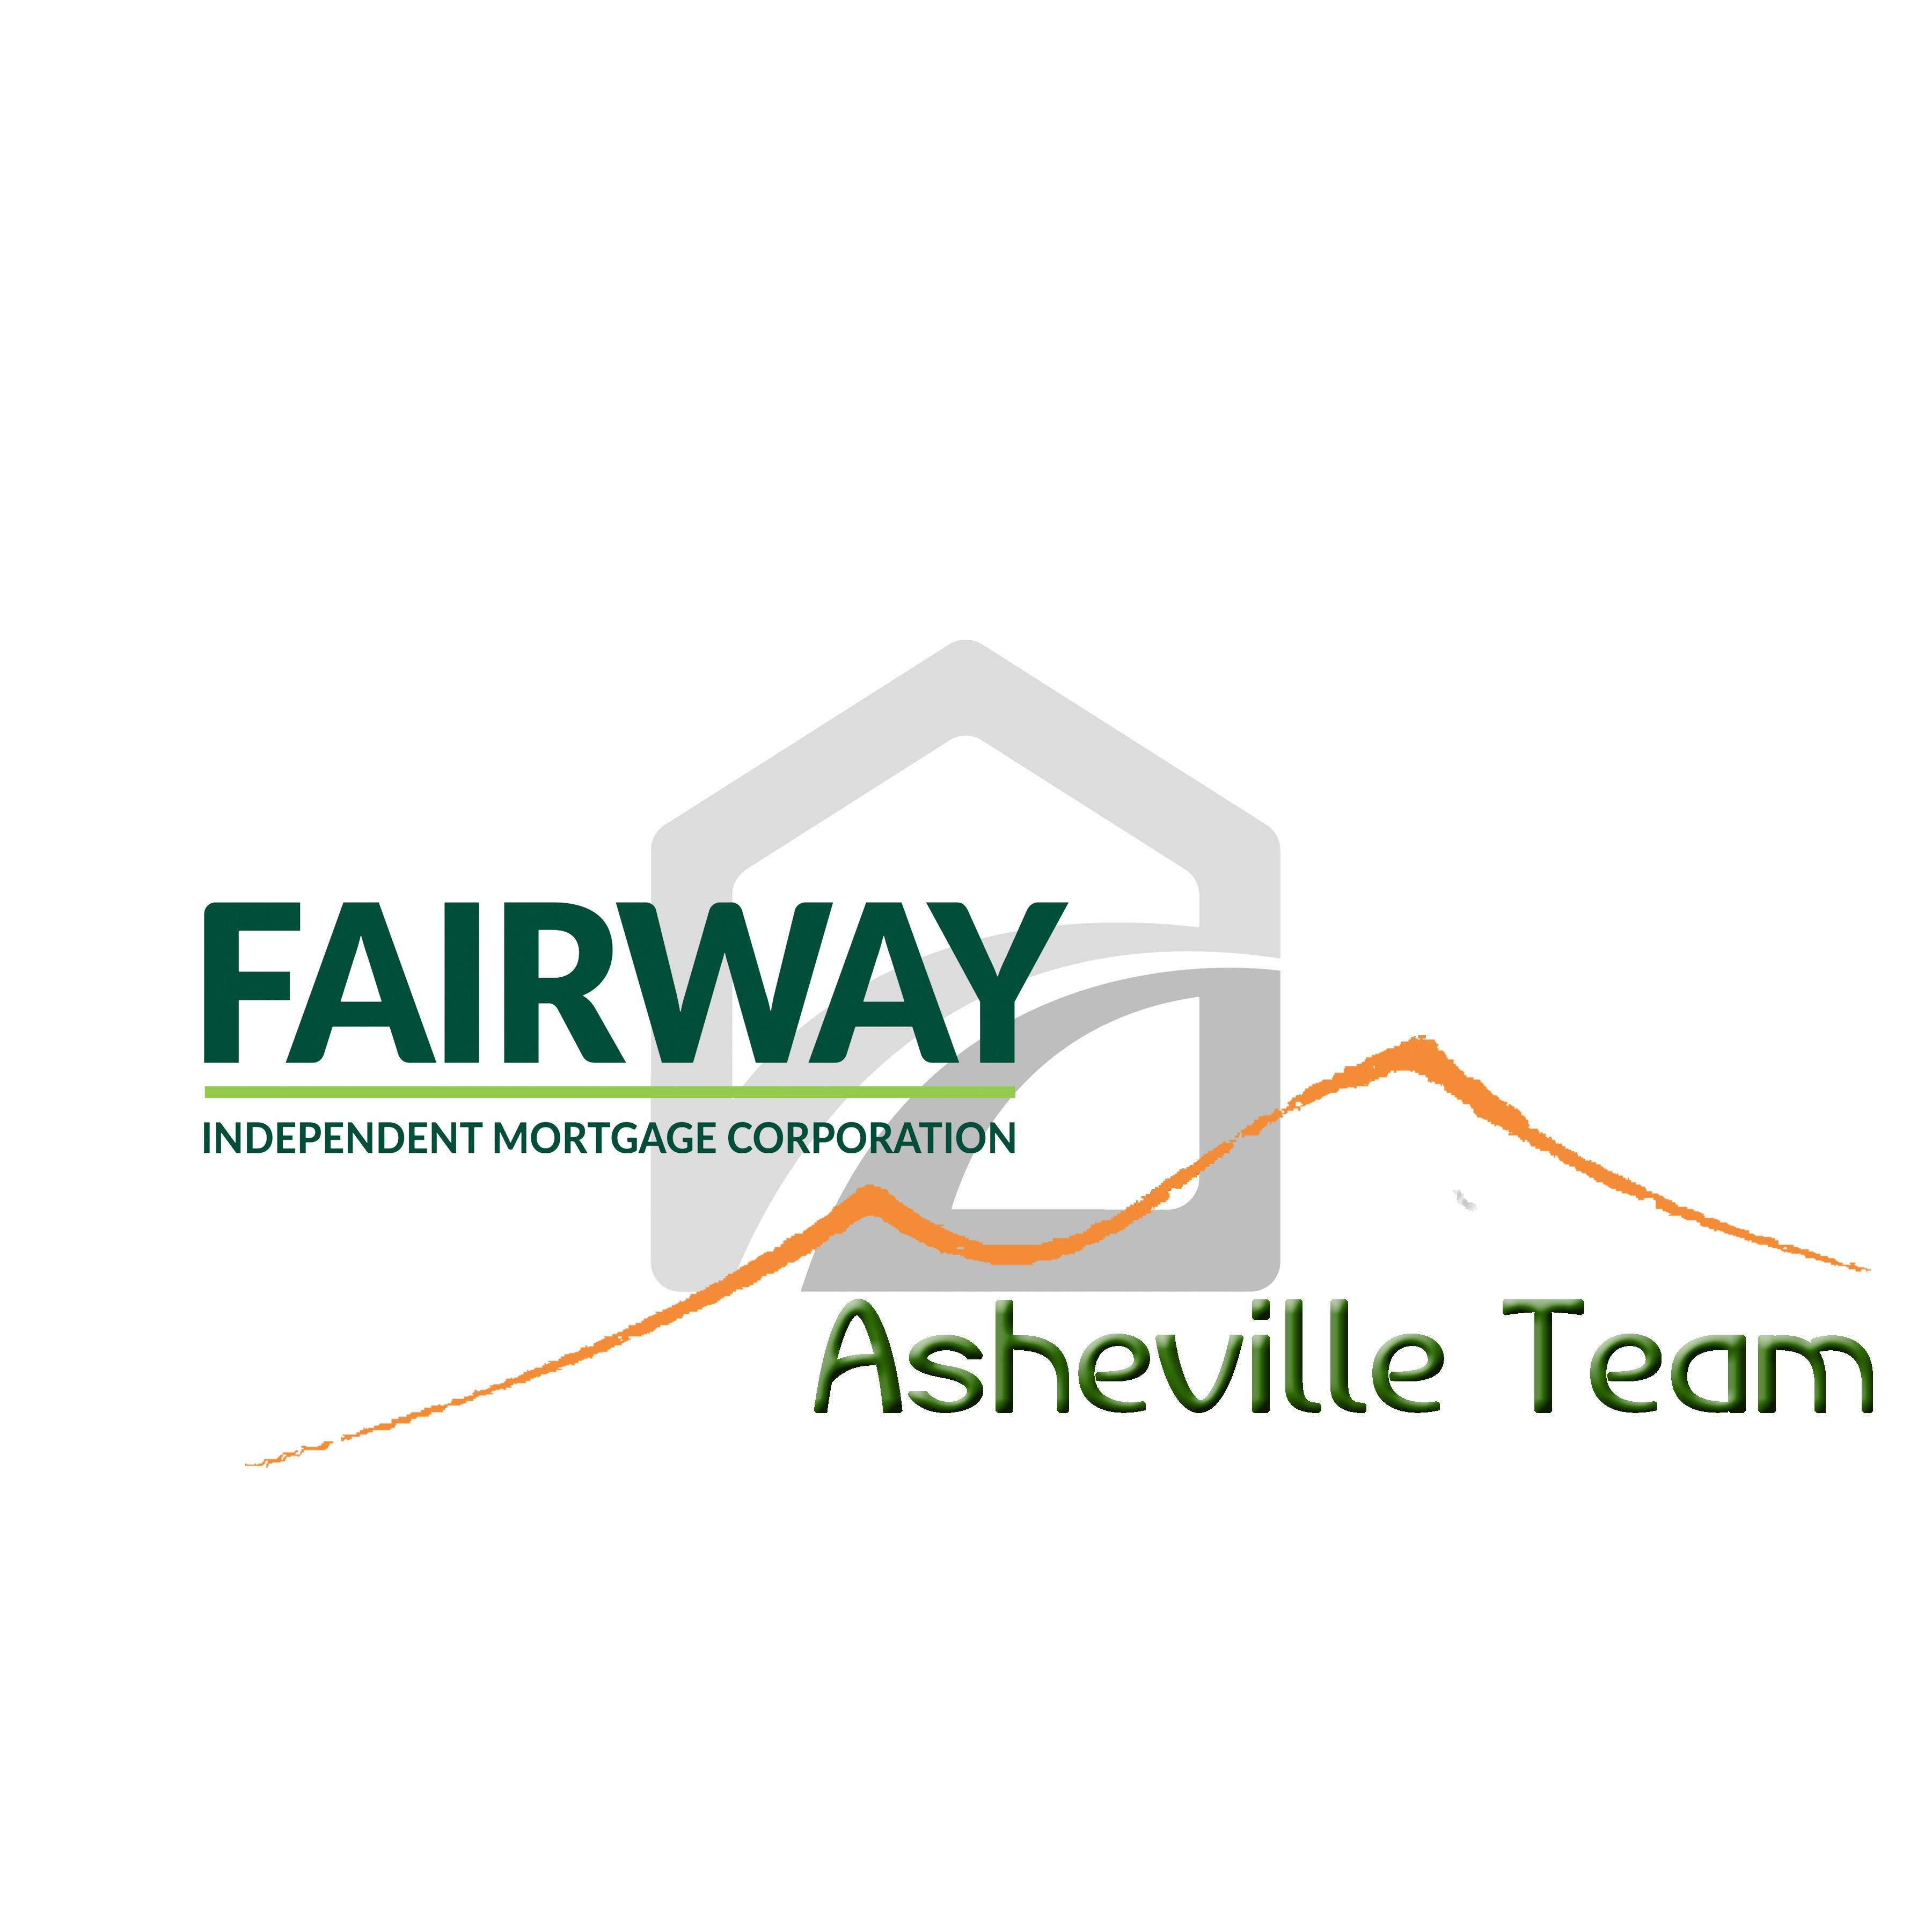 The Asheville Team - Fairway Independent Mortgage Corp